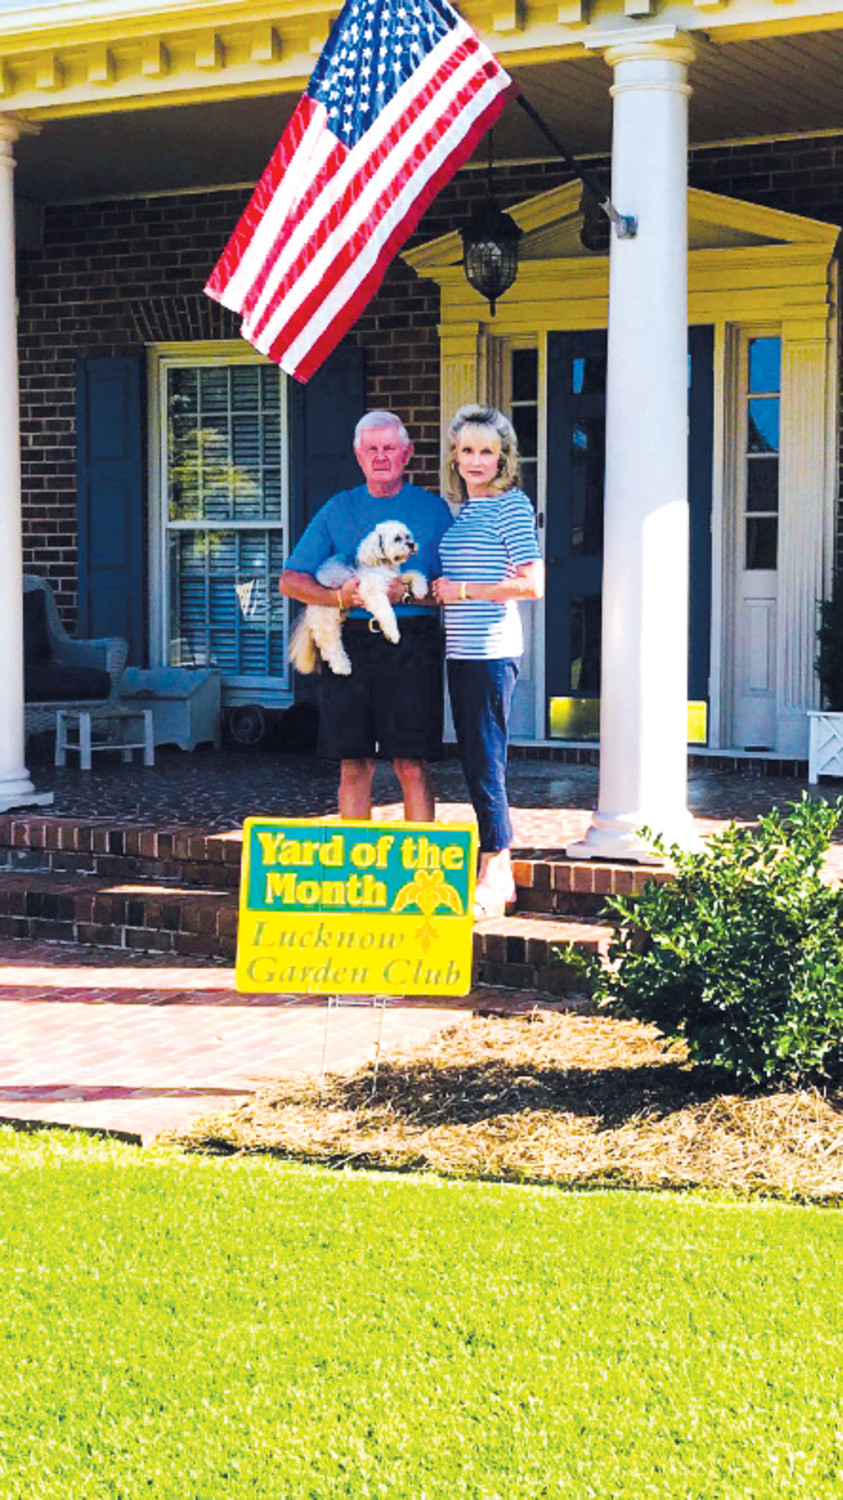 Dunn Yard of the Month for September..Chuck and Donna Robinson with their dog, Cam, at their home located at 121 Fairfield Circle, Dunn. The Robinson home was named the Lucknow Garden Club Yard of the Month for September.